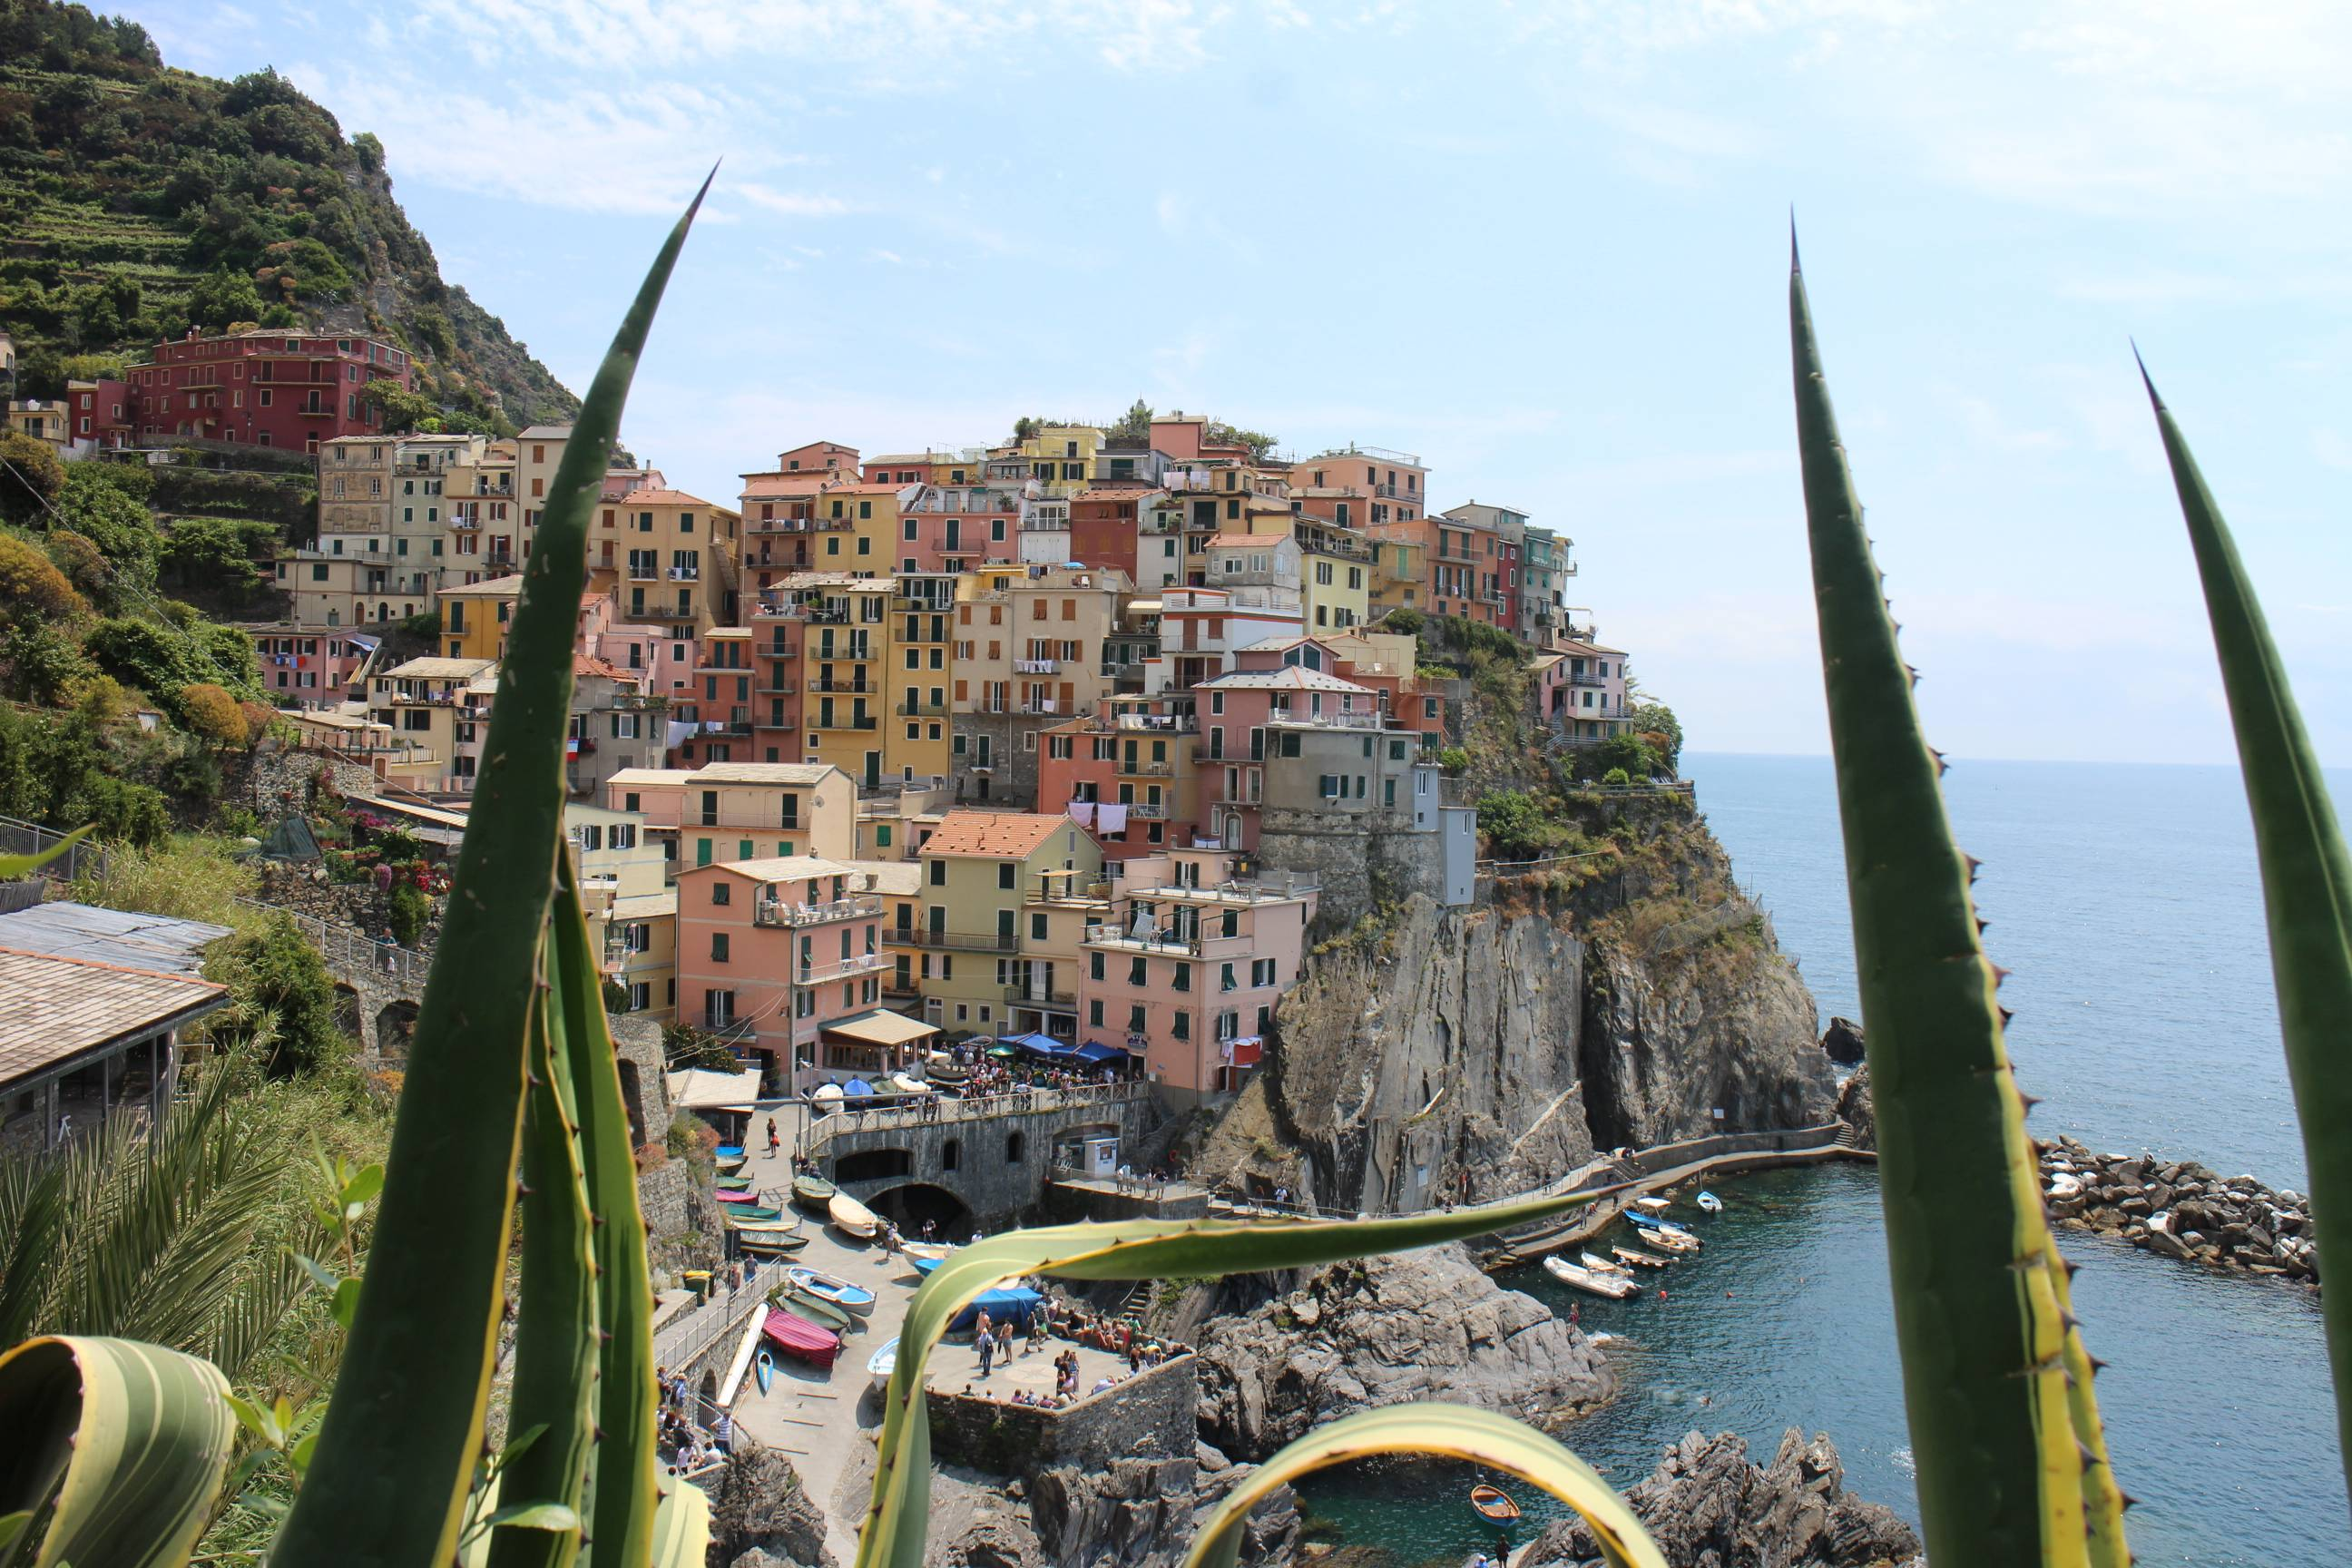 Photo 2: Les cinque terre, 5 villages de rêve en Italie